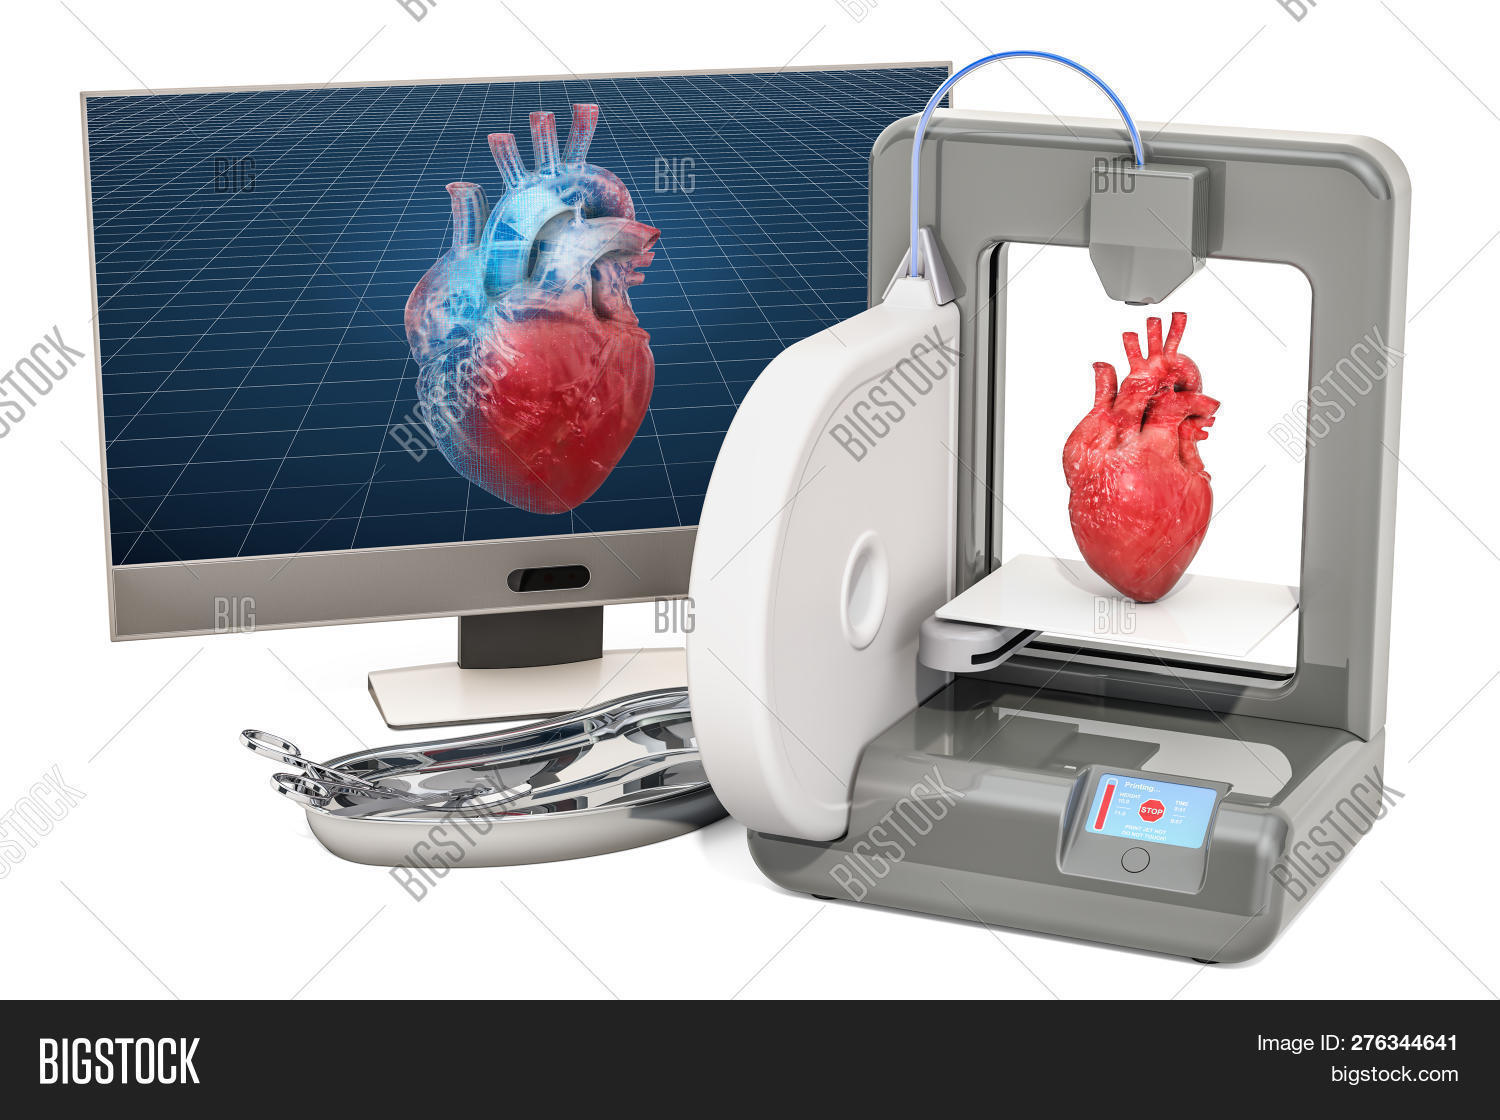 Creating Artificial Heart On Three Dimensional Printer, 3d Printing In Medicine Concept. 3d Renderin